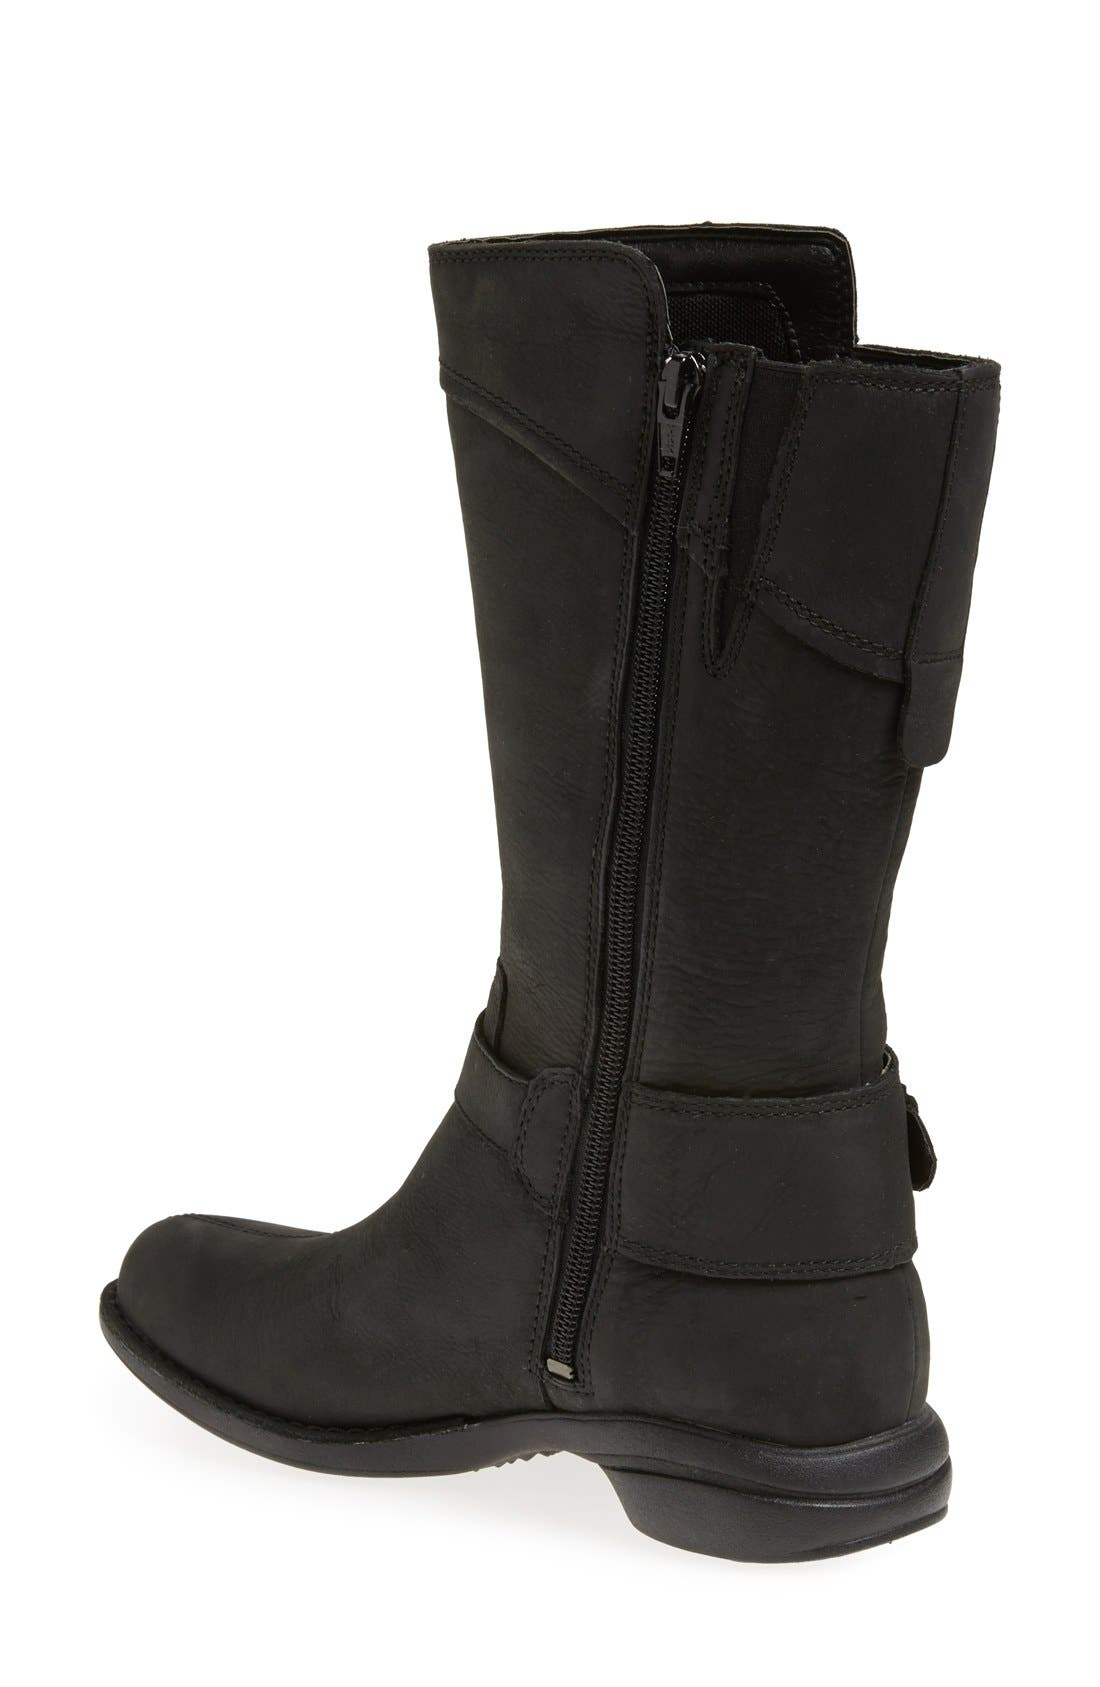 'Captiva Buckle Down' Boot,                             Alternate thumbnail 2, color,                             001